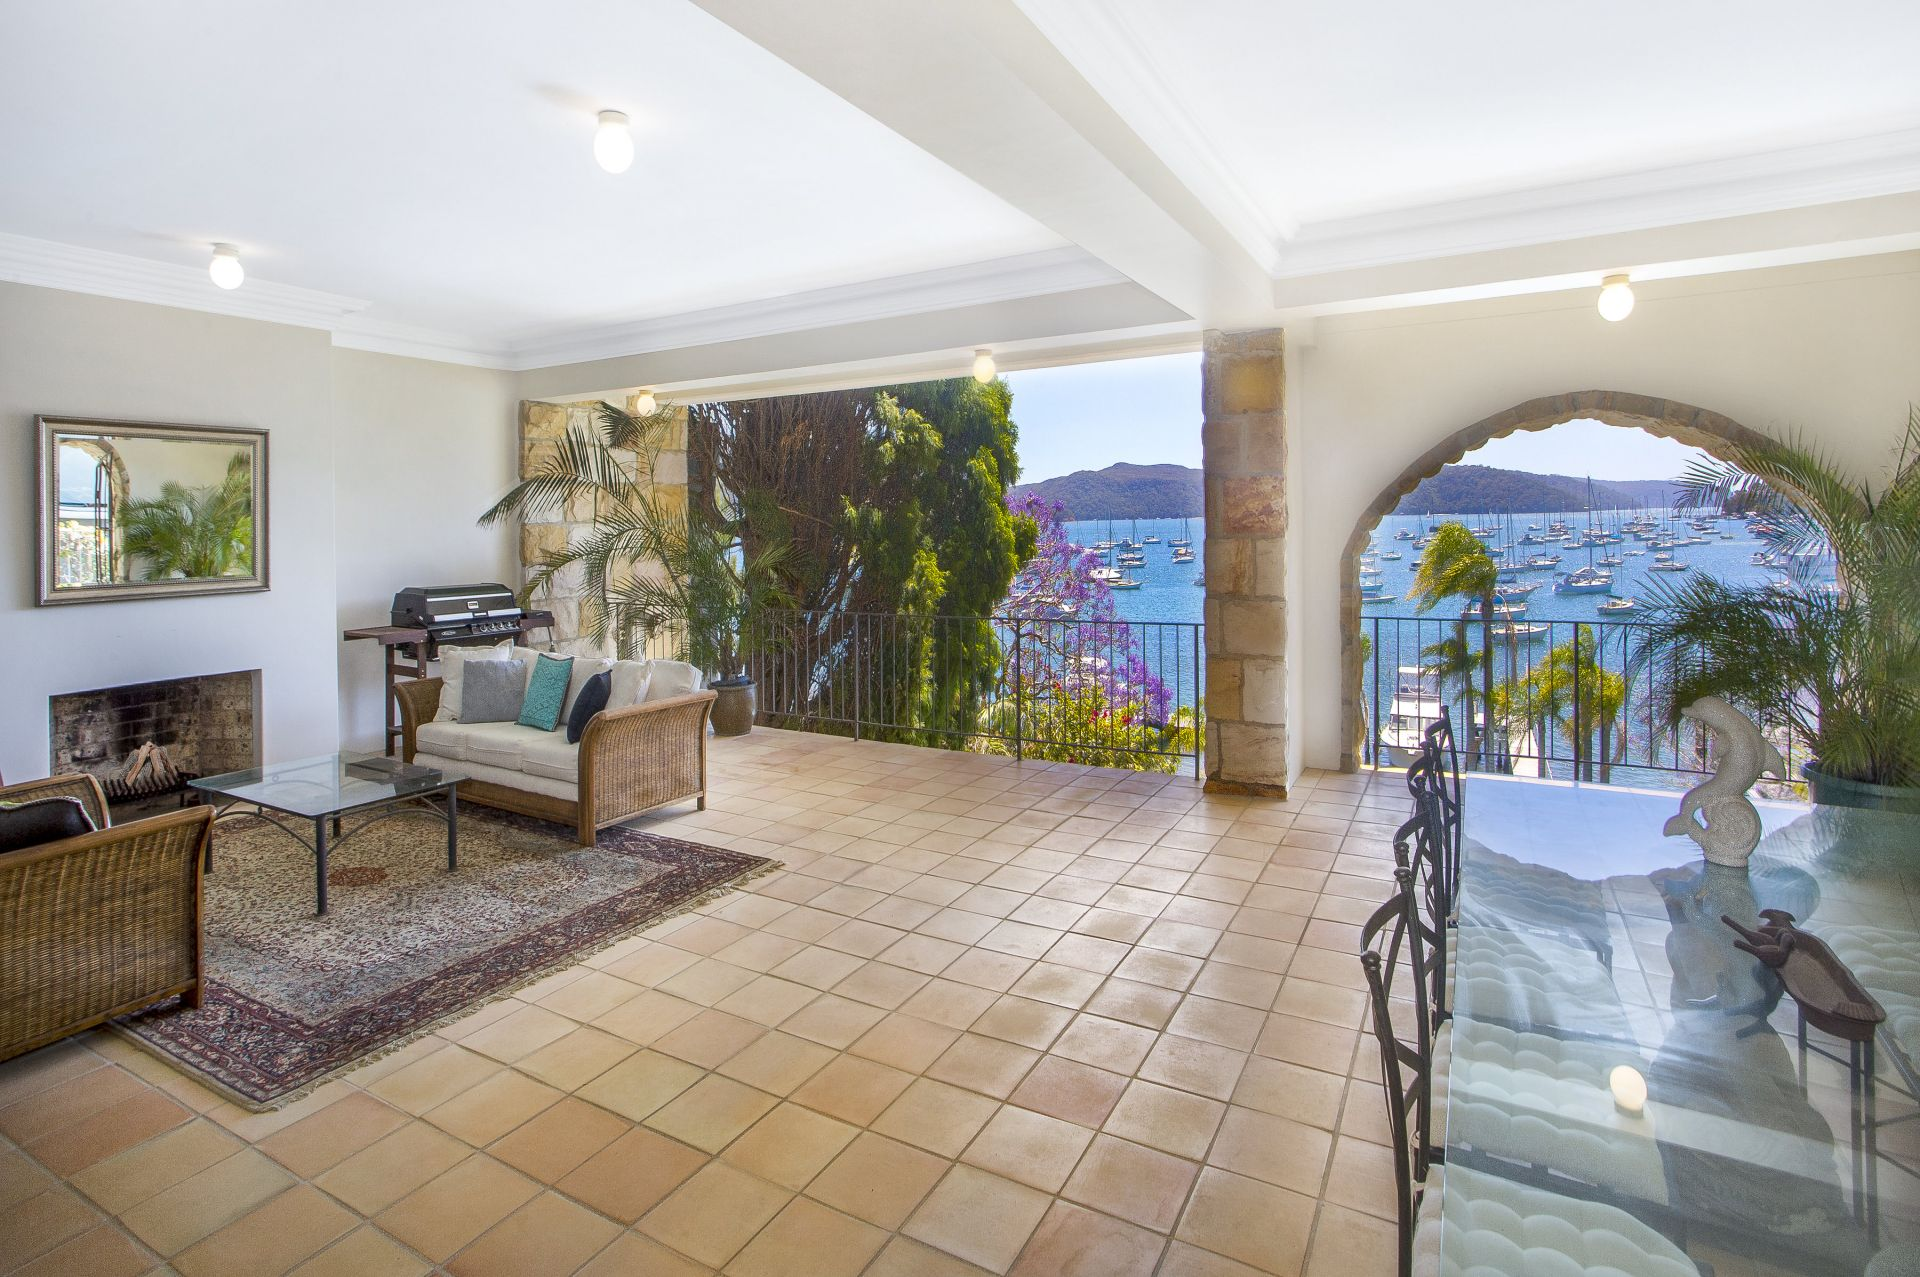 Additional photo for property listing at 'La Dolce Vita' - Mediterranean-inspired waterfront 98 Prince Alfred Parade Newport, New South Wales,2106 澳大利亞